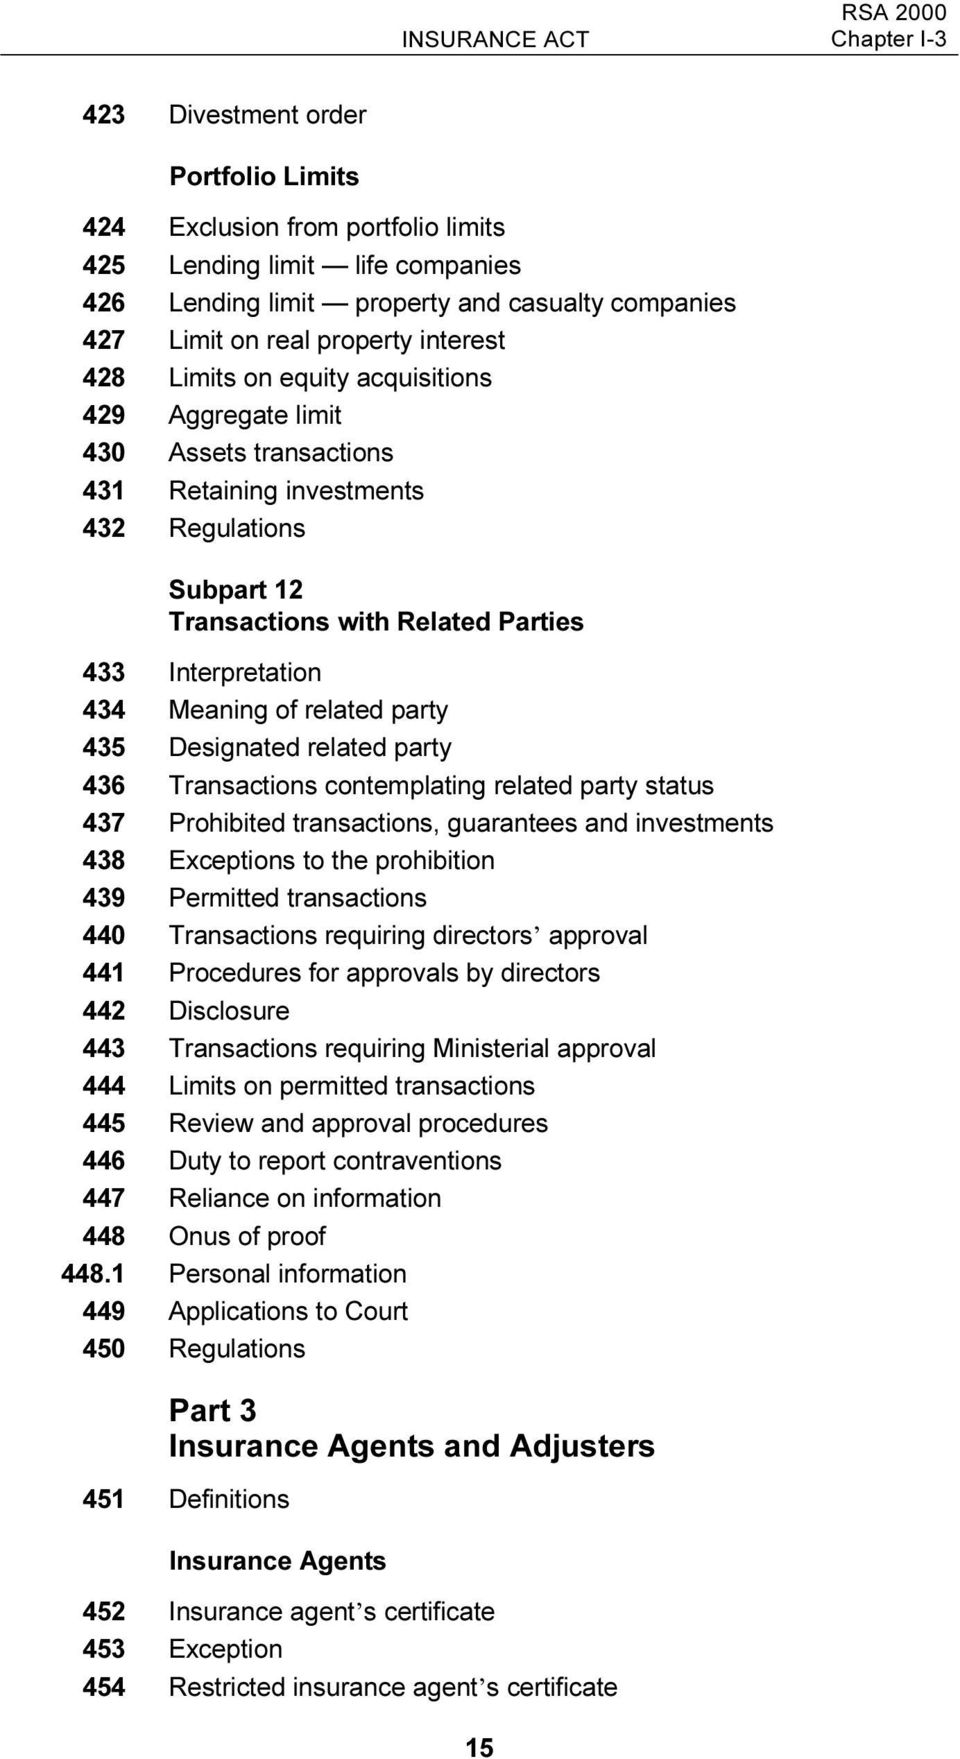 Interpretation 434 Meaning of related party 435 Designated related party 436 Transactions contemplating related party status 437 Prohibited transactions, guarantees and investments 438 Exceptions to